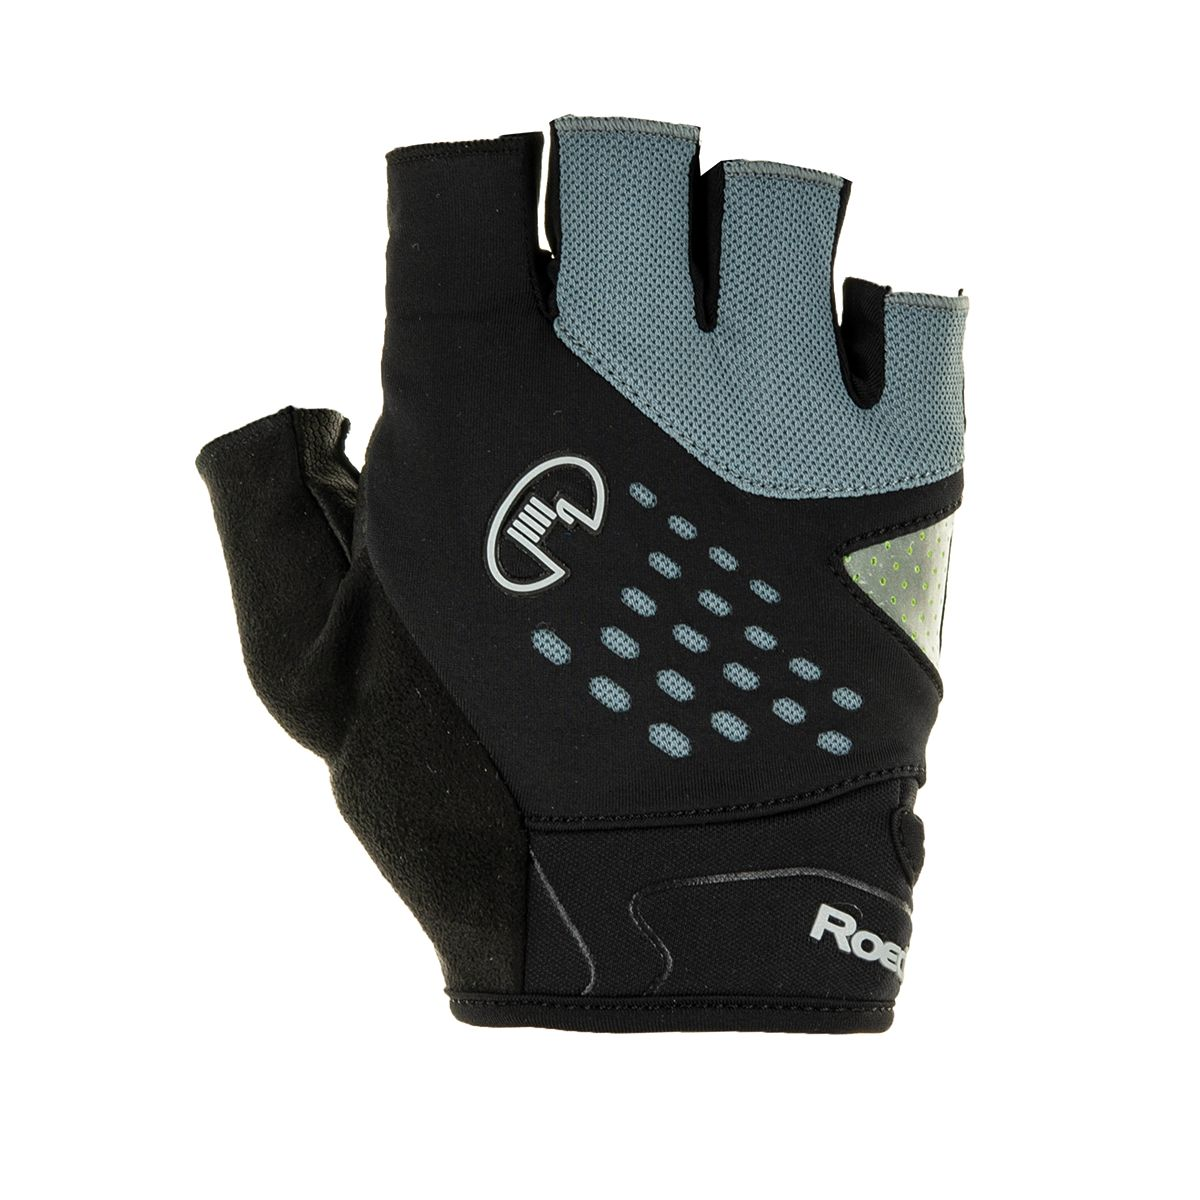 INOVO cycling gloves